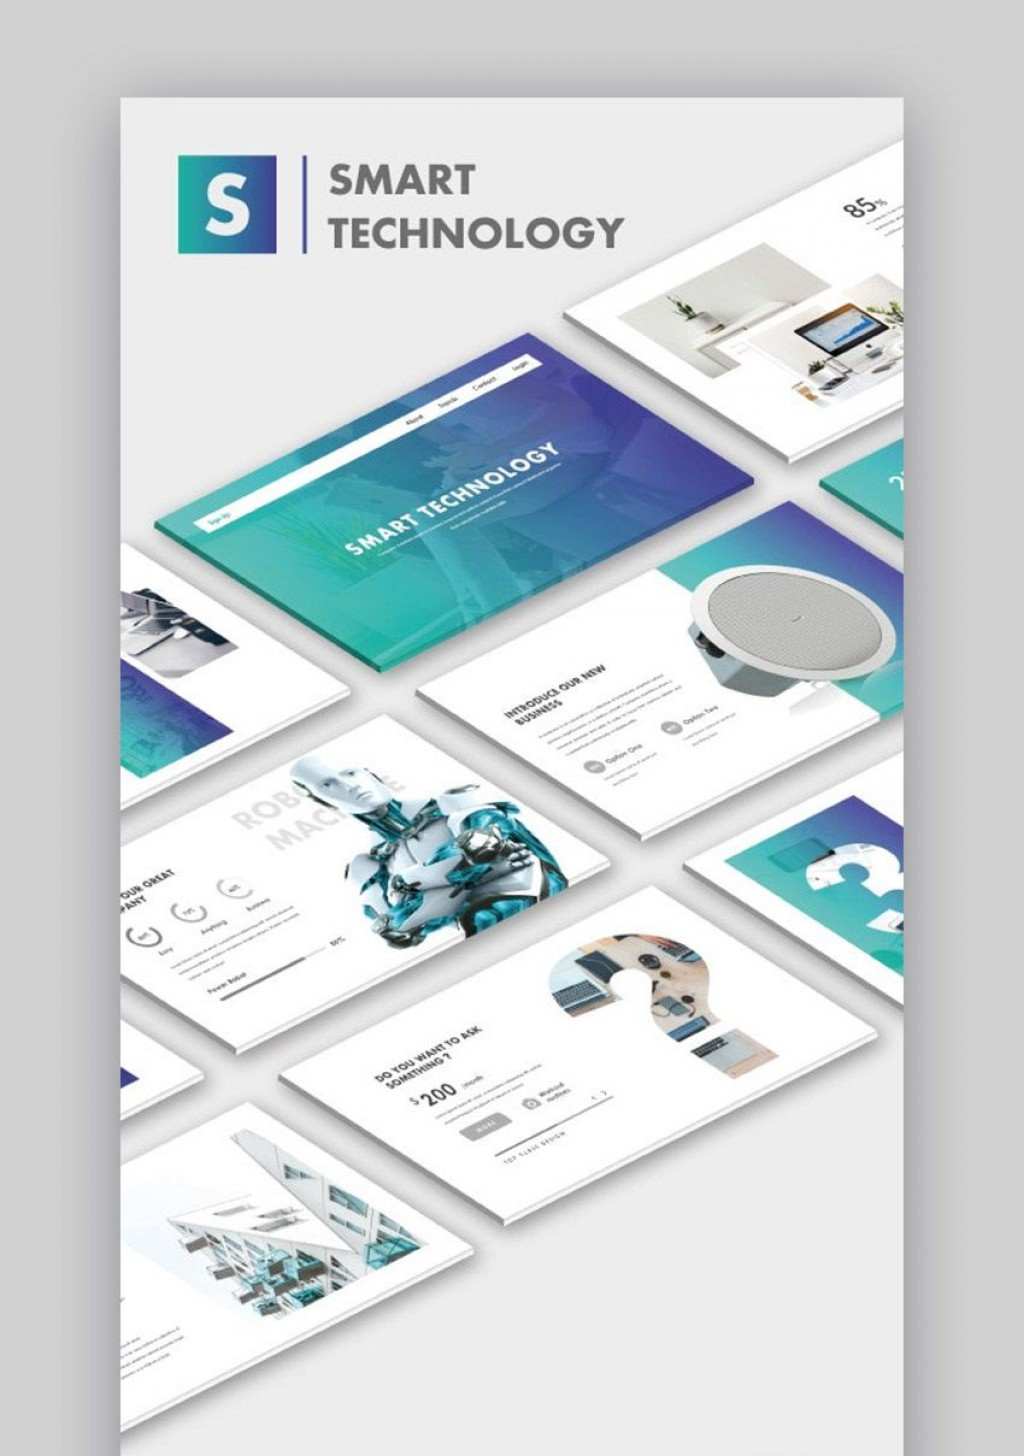 000 Magnificent Free Technology Powerpoint Template High Definition  Templates Animated Information DownloadLarge